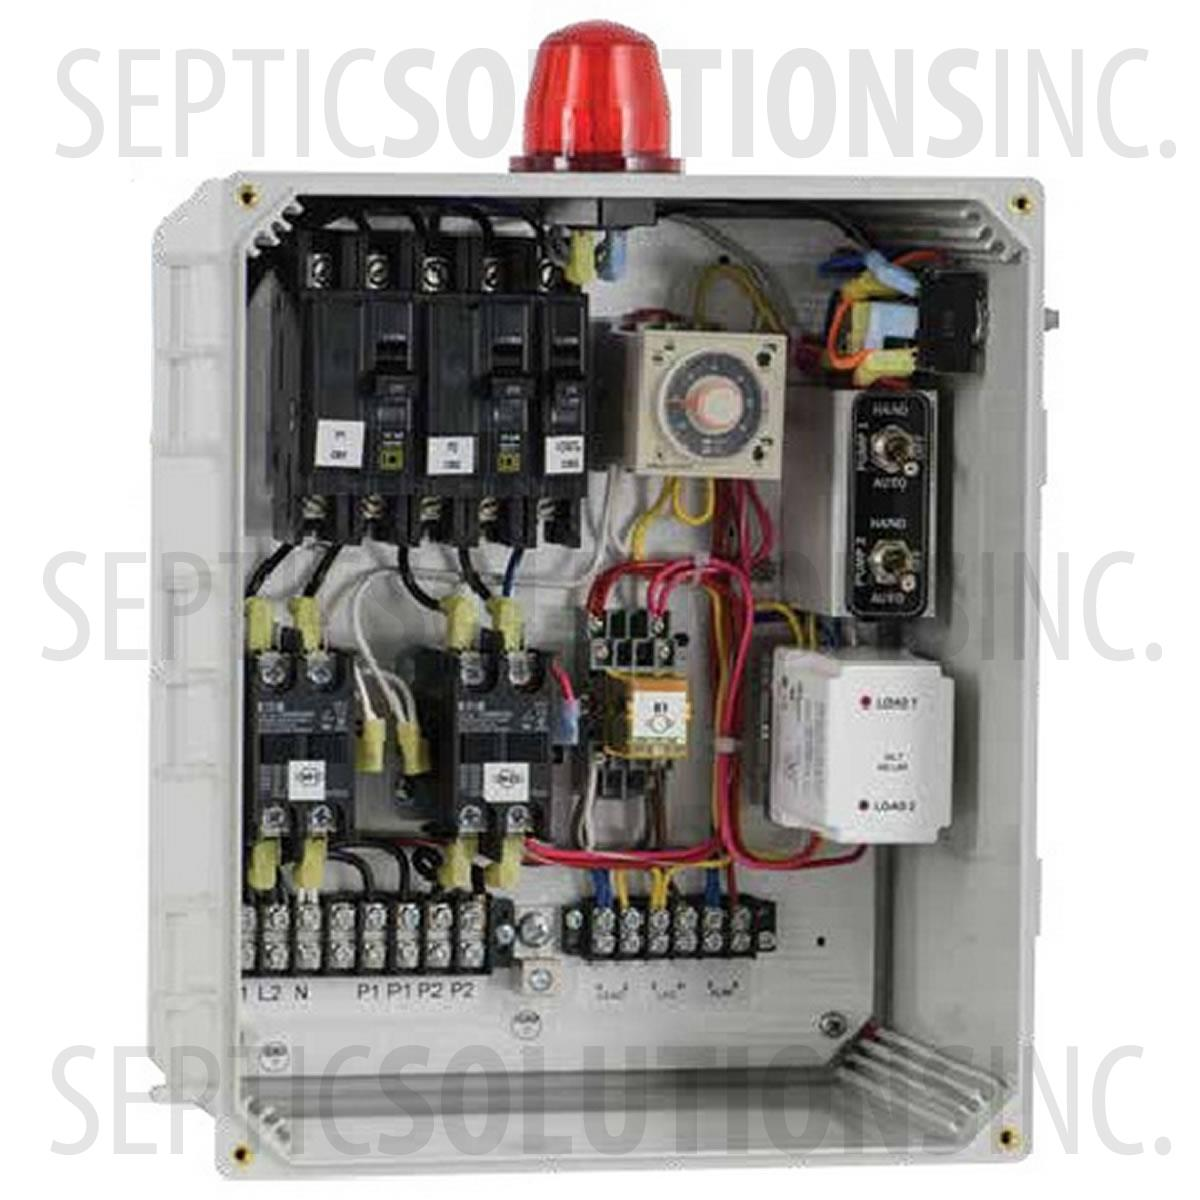 Spi Duplex Time Dosing Control Panel 50a810 Free Shipping